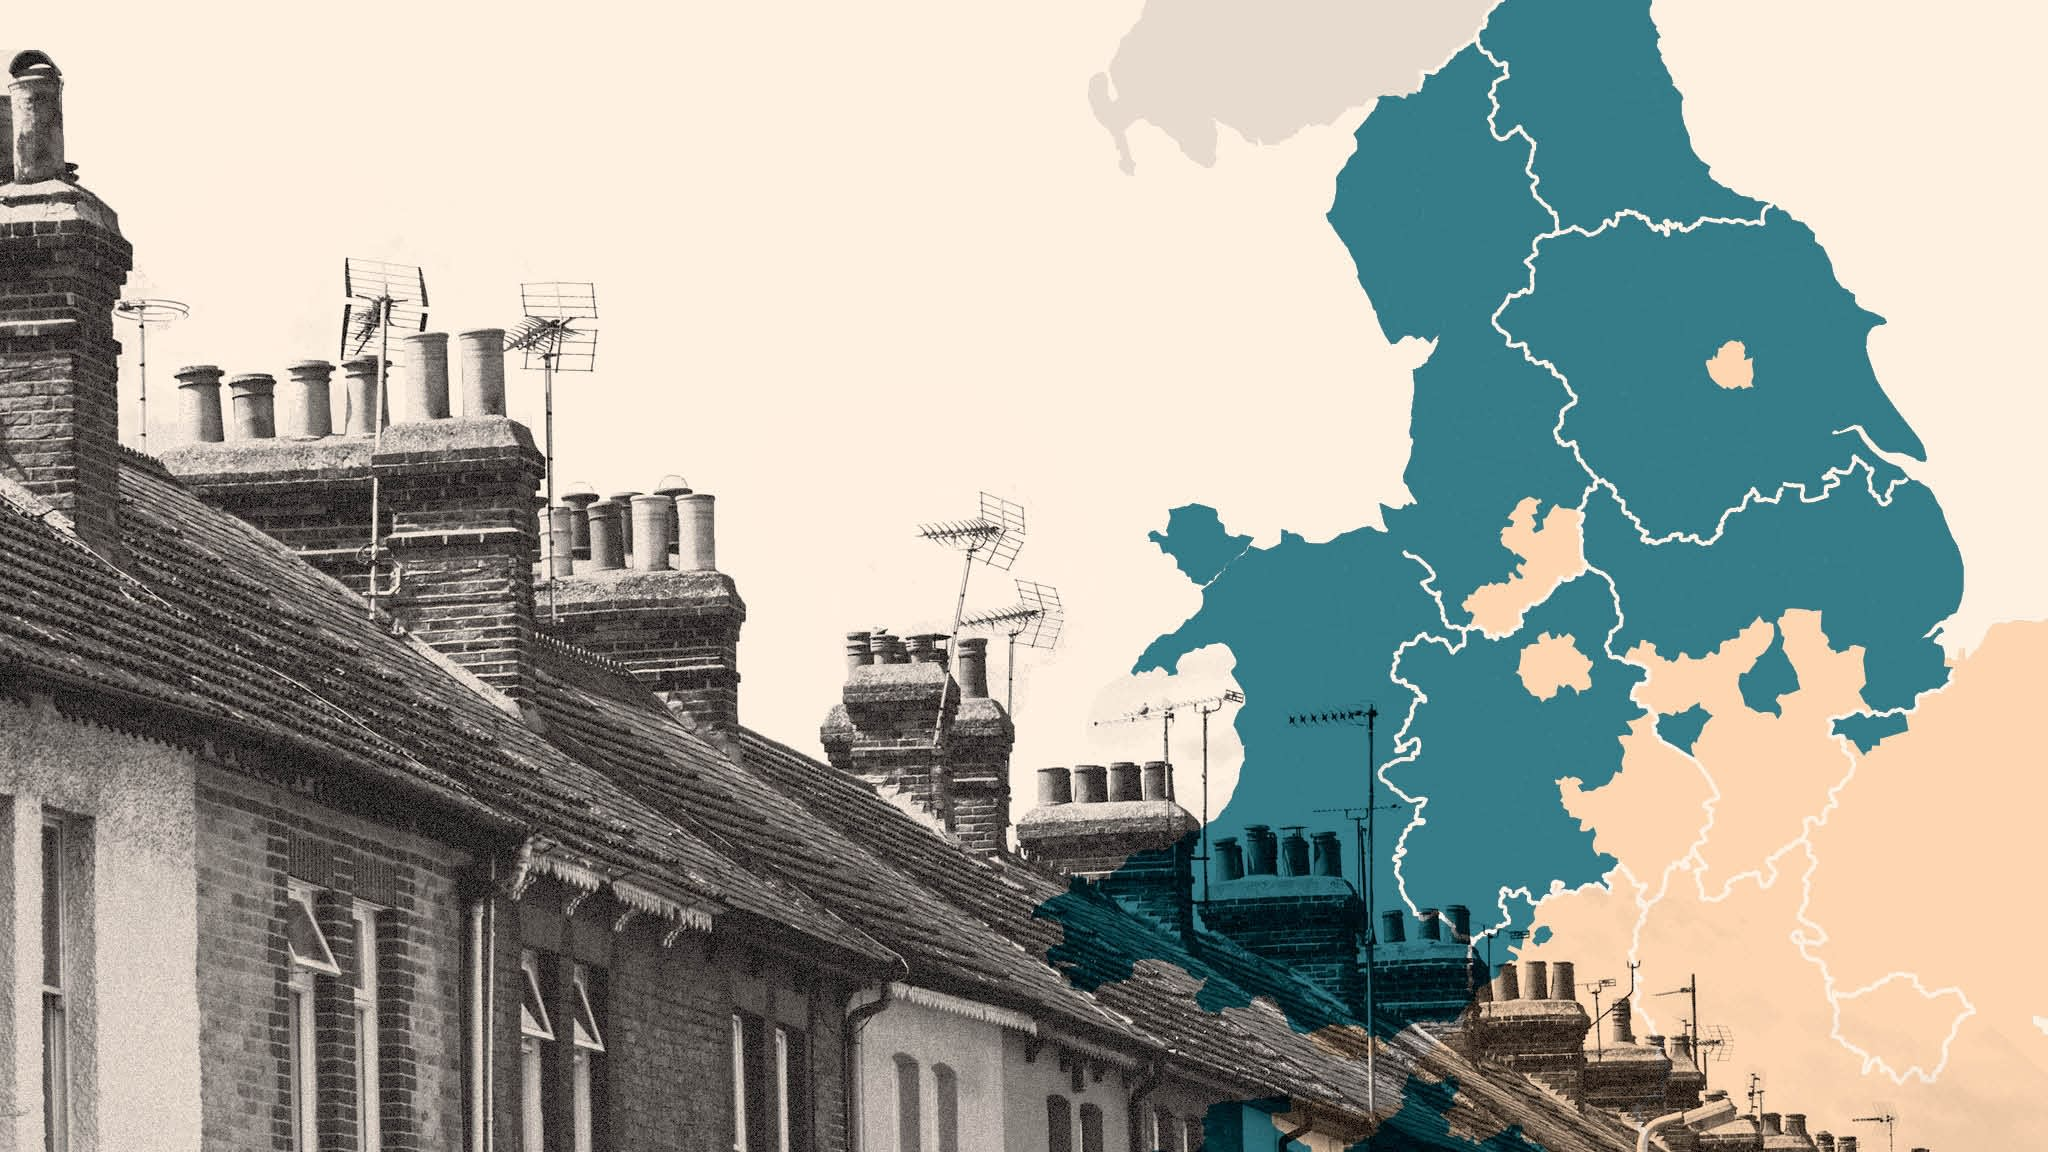 Real estate: post-crisis boom draws to a close   Financial Times